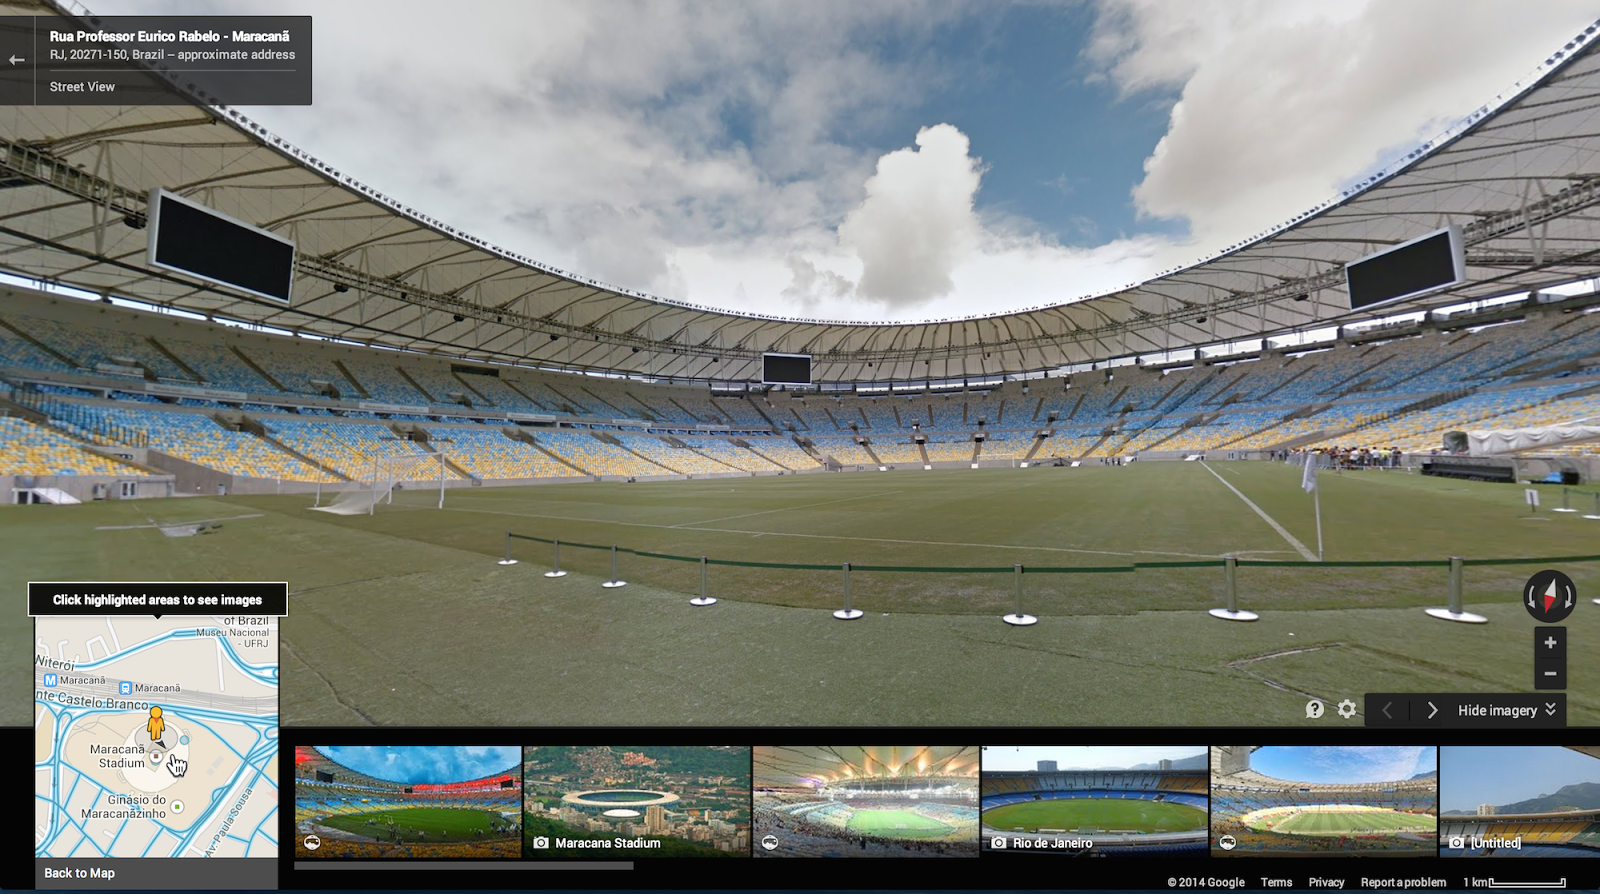 2014 fifa world cup brazil comes to google maps street view world cup brazil street view 1 gumiabroncs Images